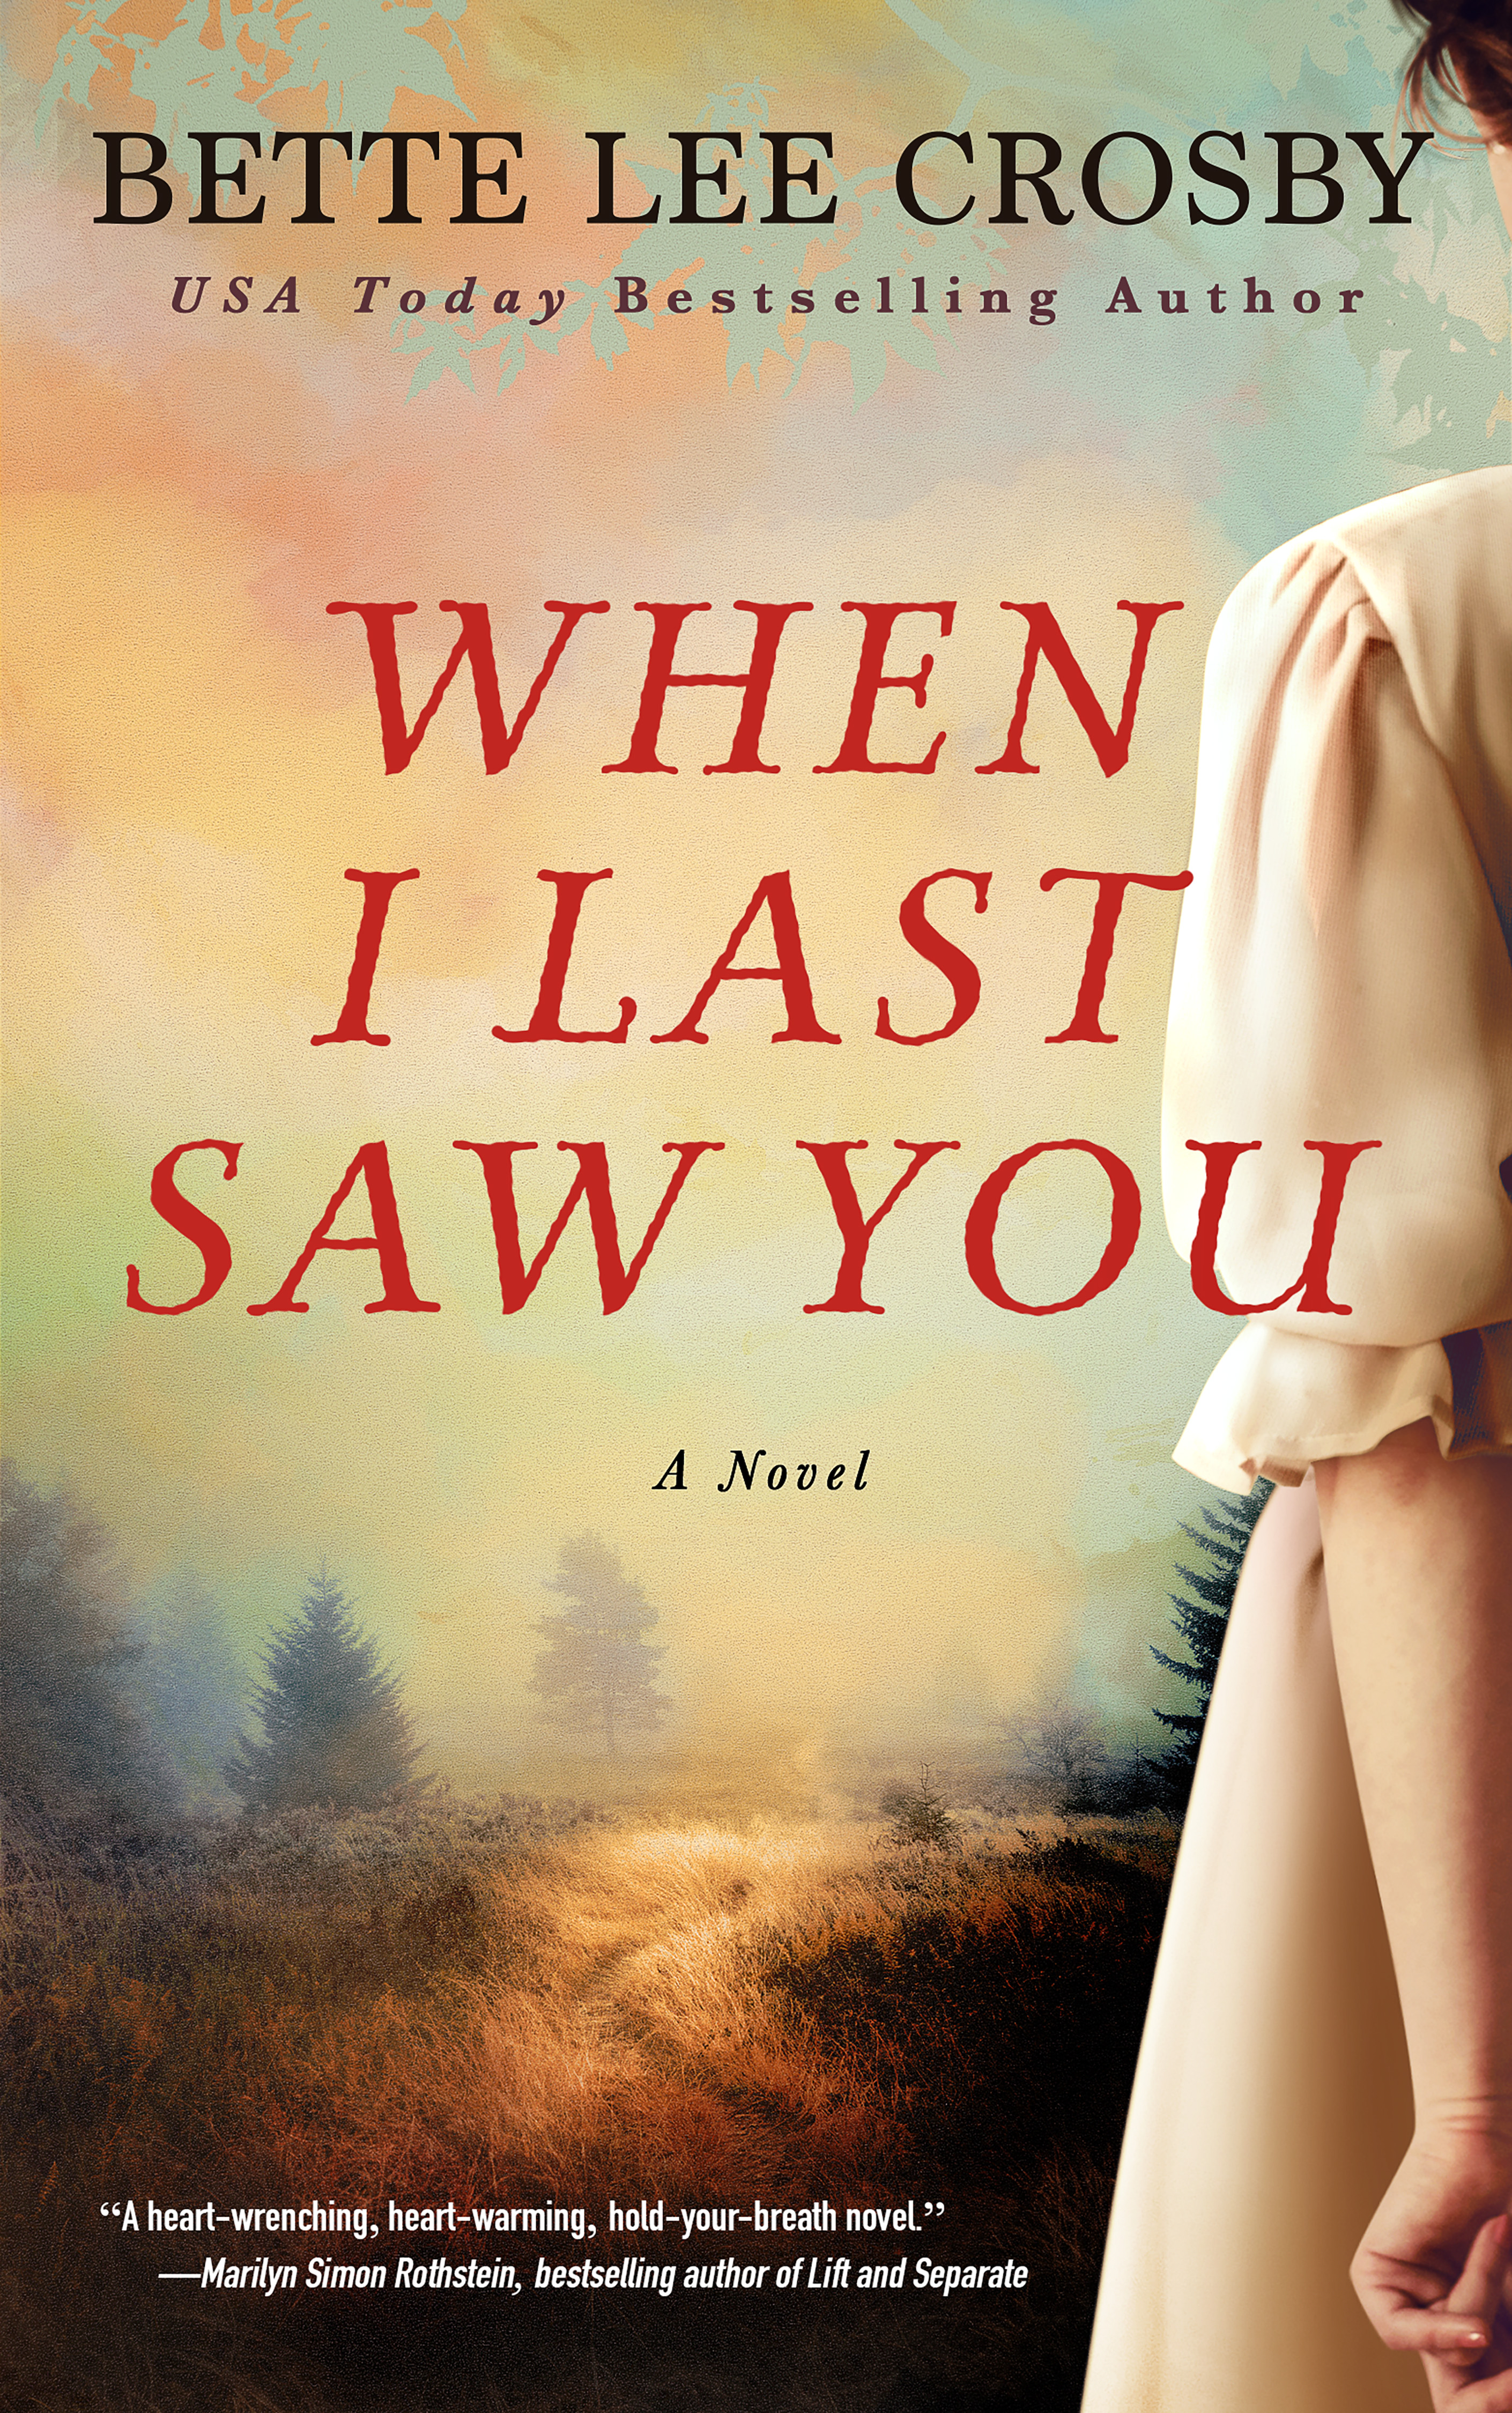 When I Last Saw You book cover with girl's side visible with